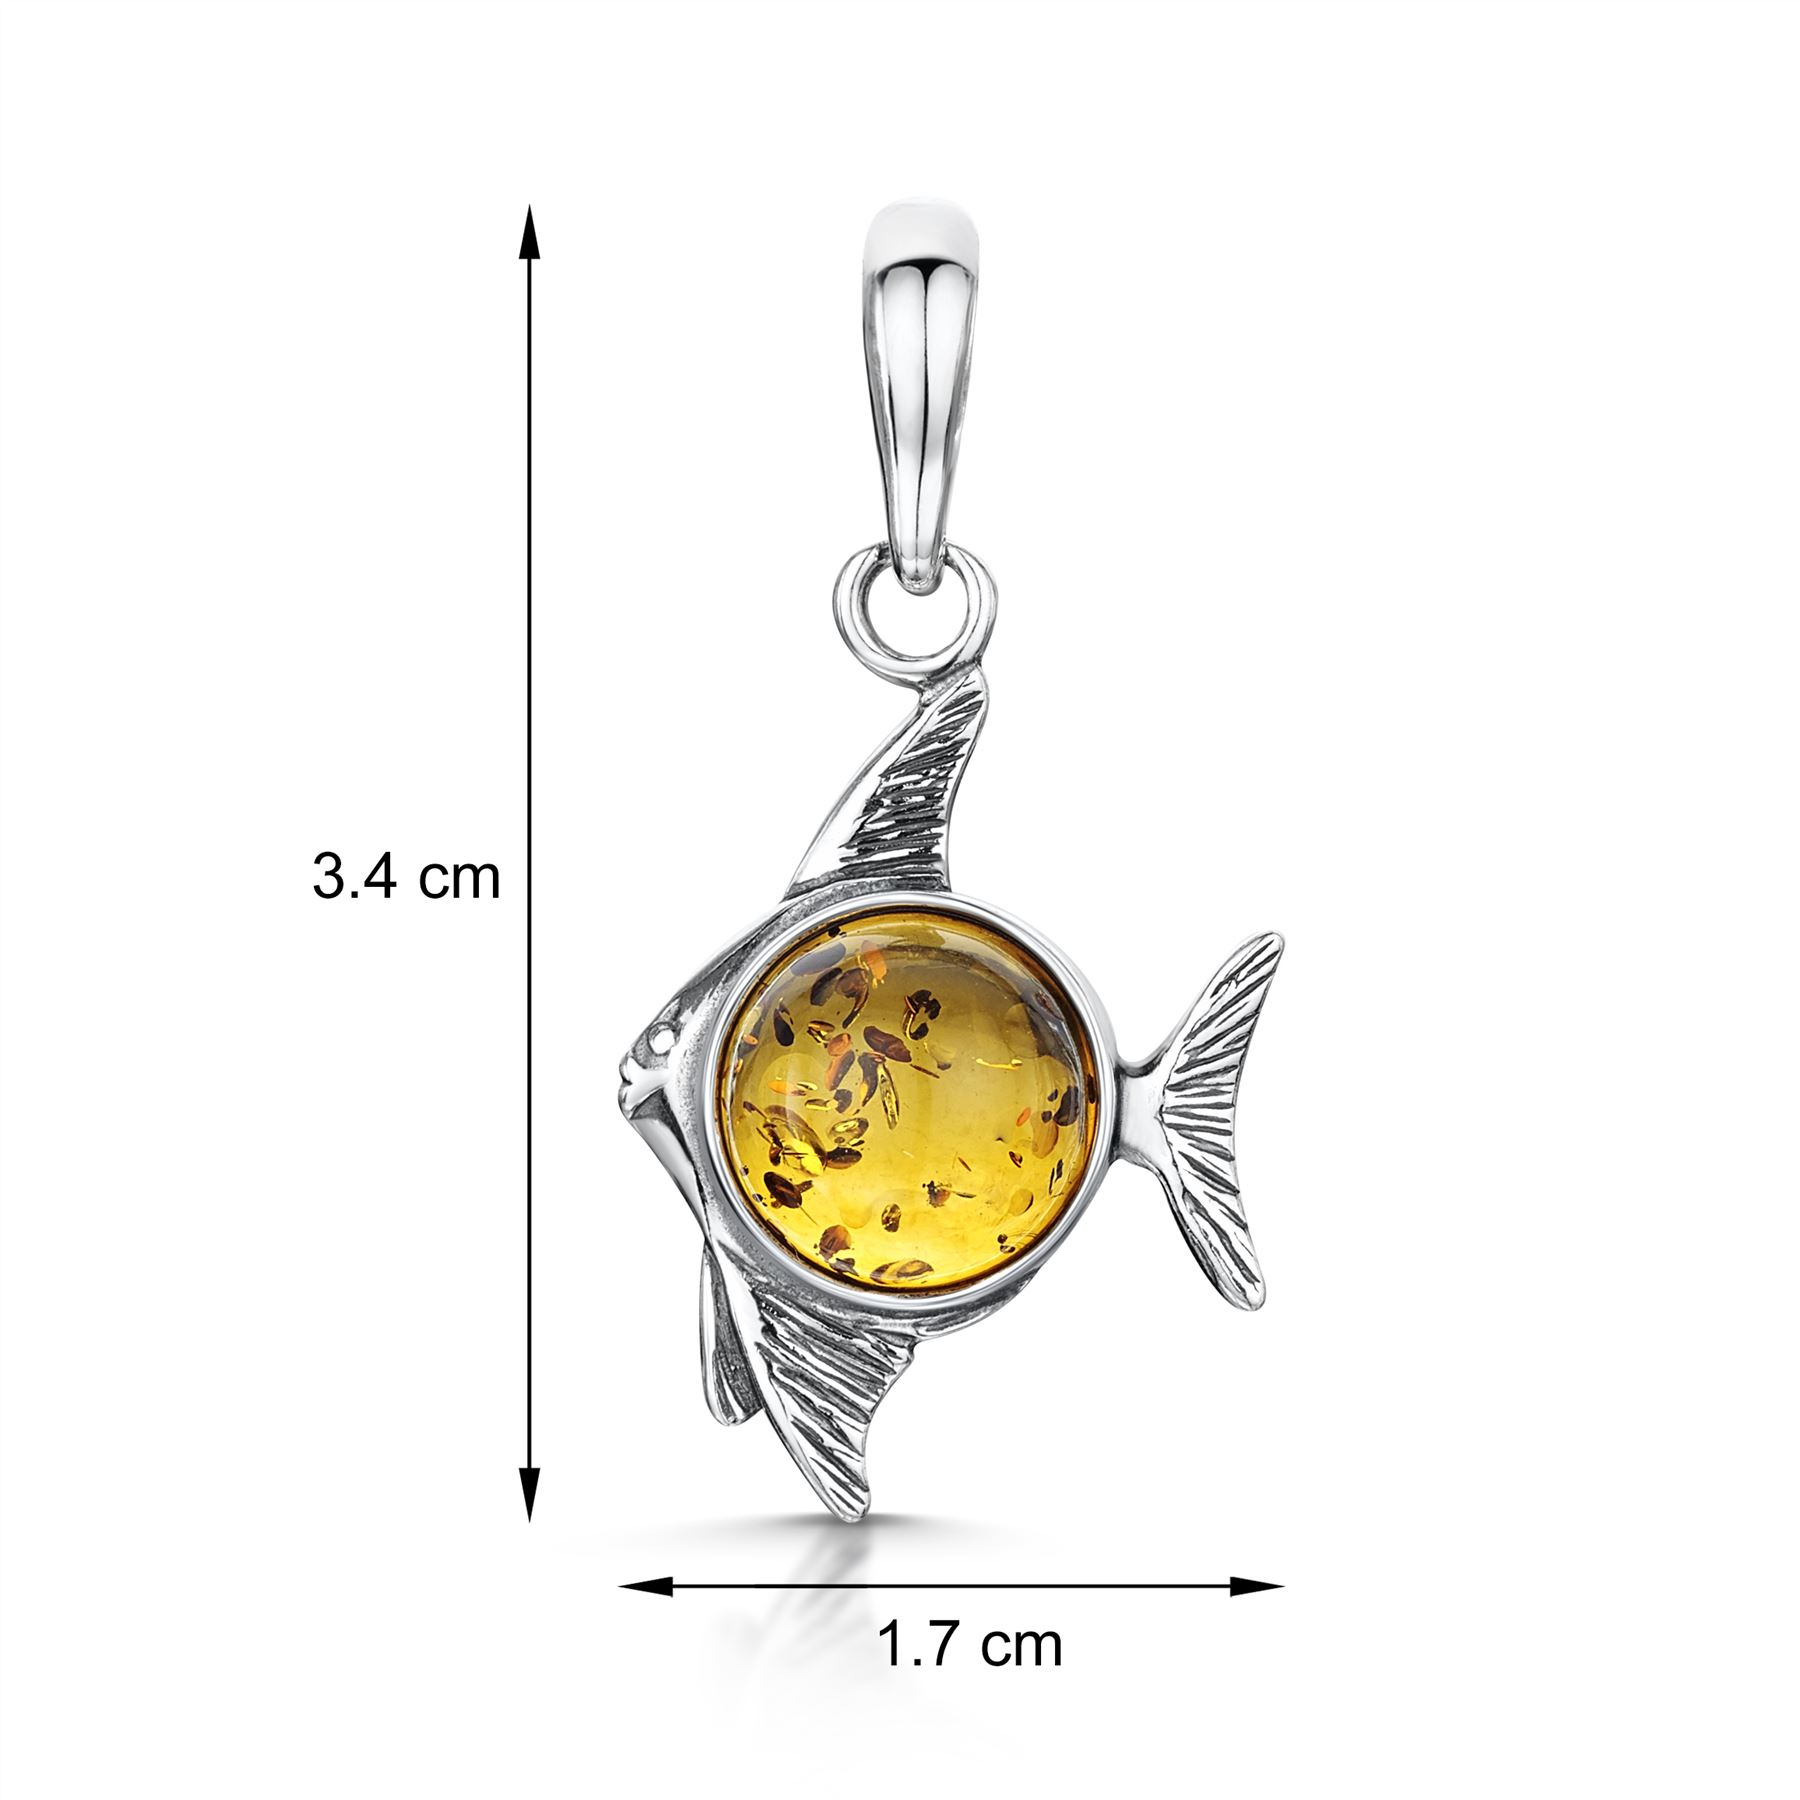 Amberta-Genuine-925-Sterling-Silver-Pendant-with-Natural-Baltic-Amber-Gemstone thumbnail 83